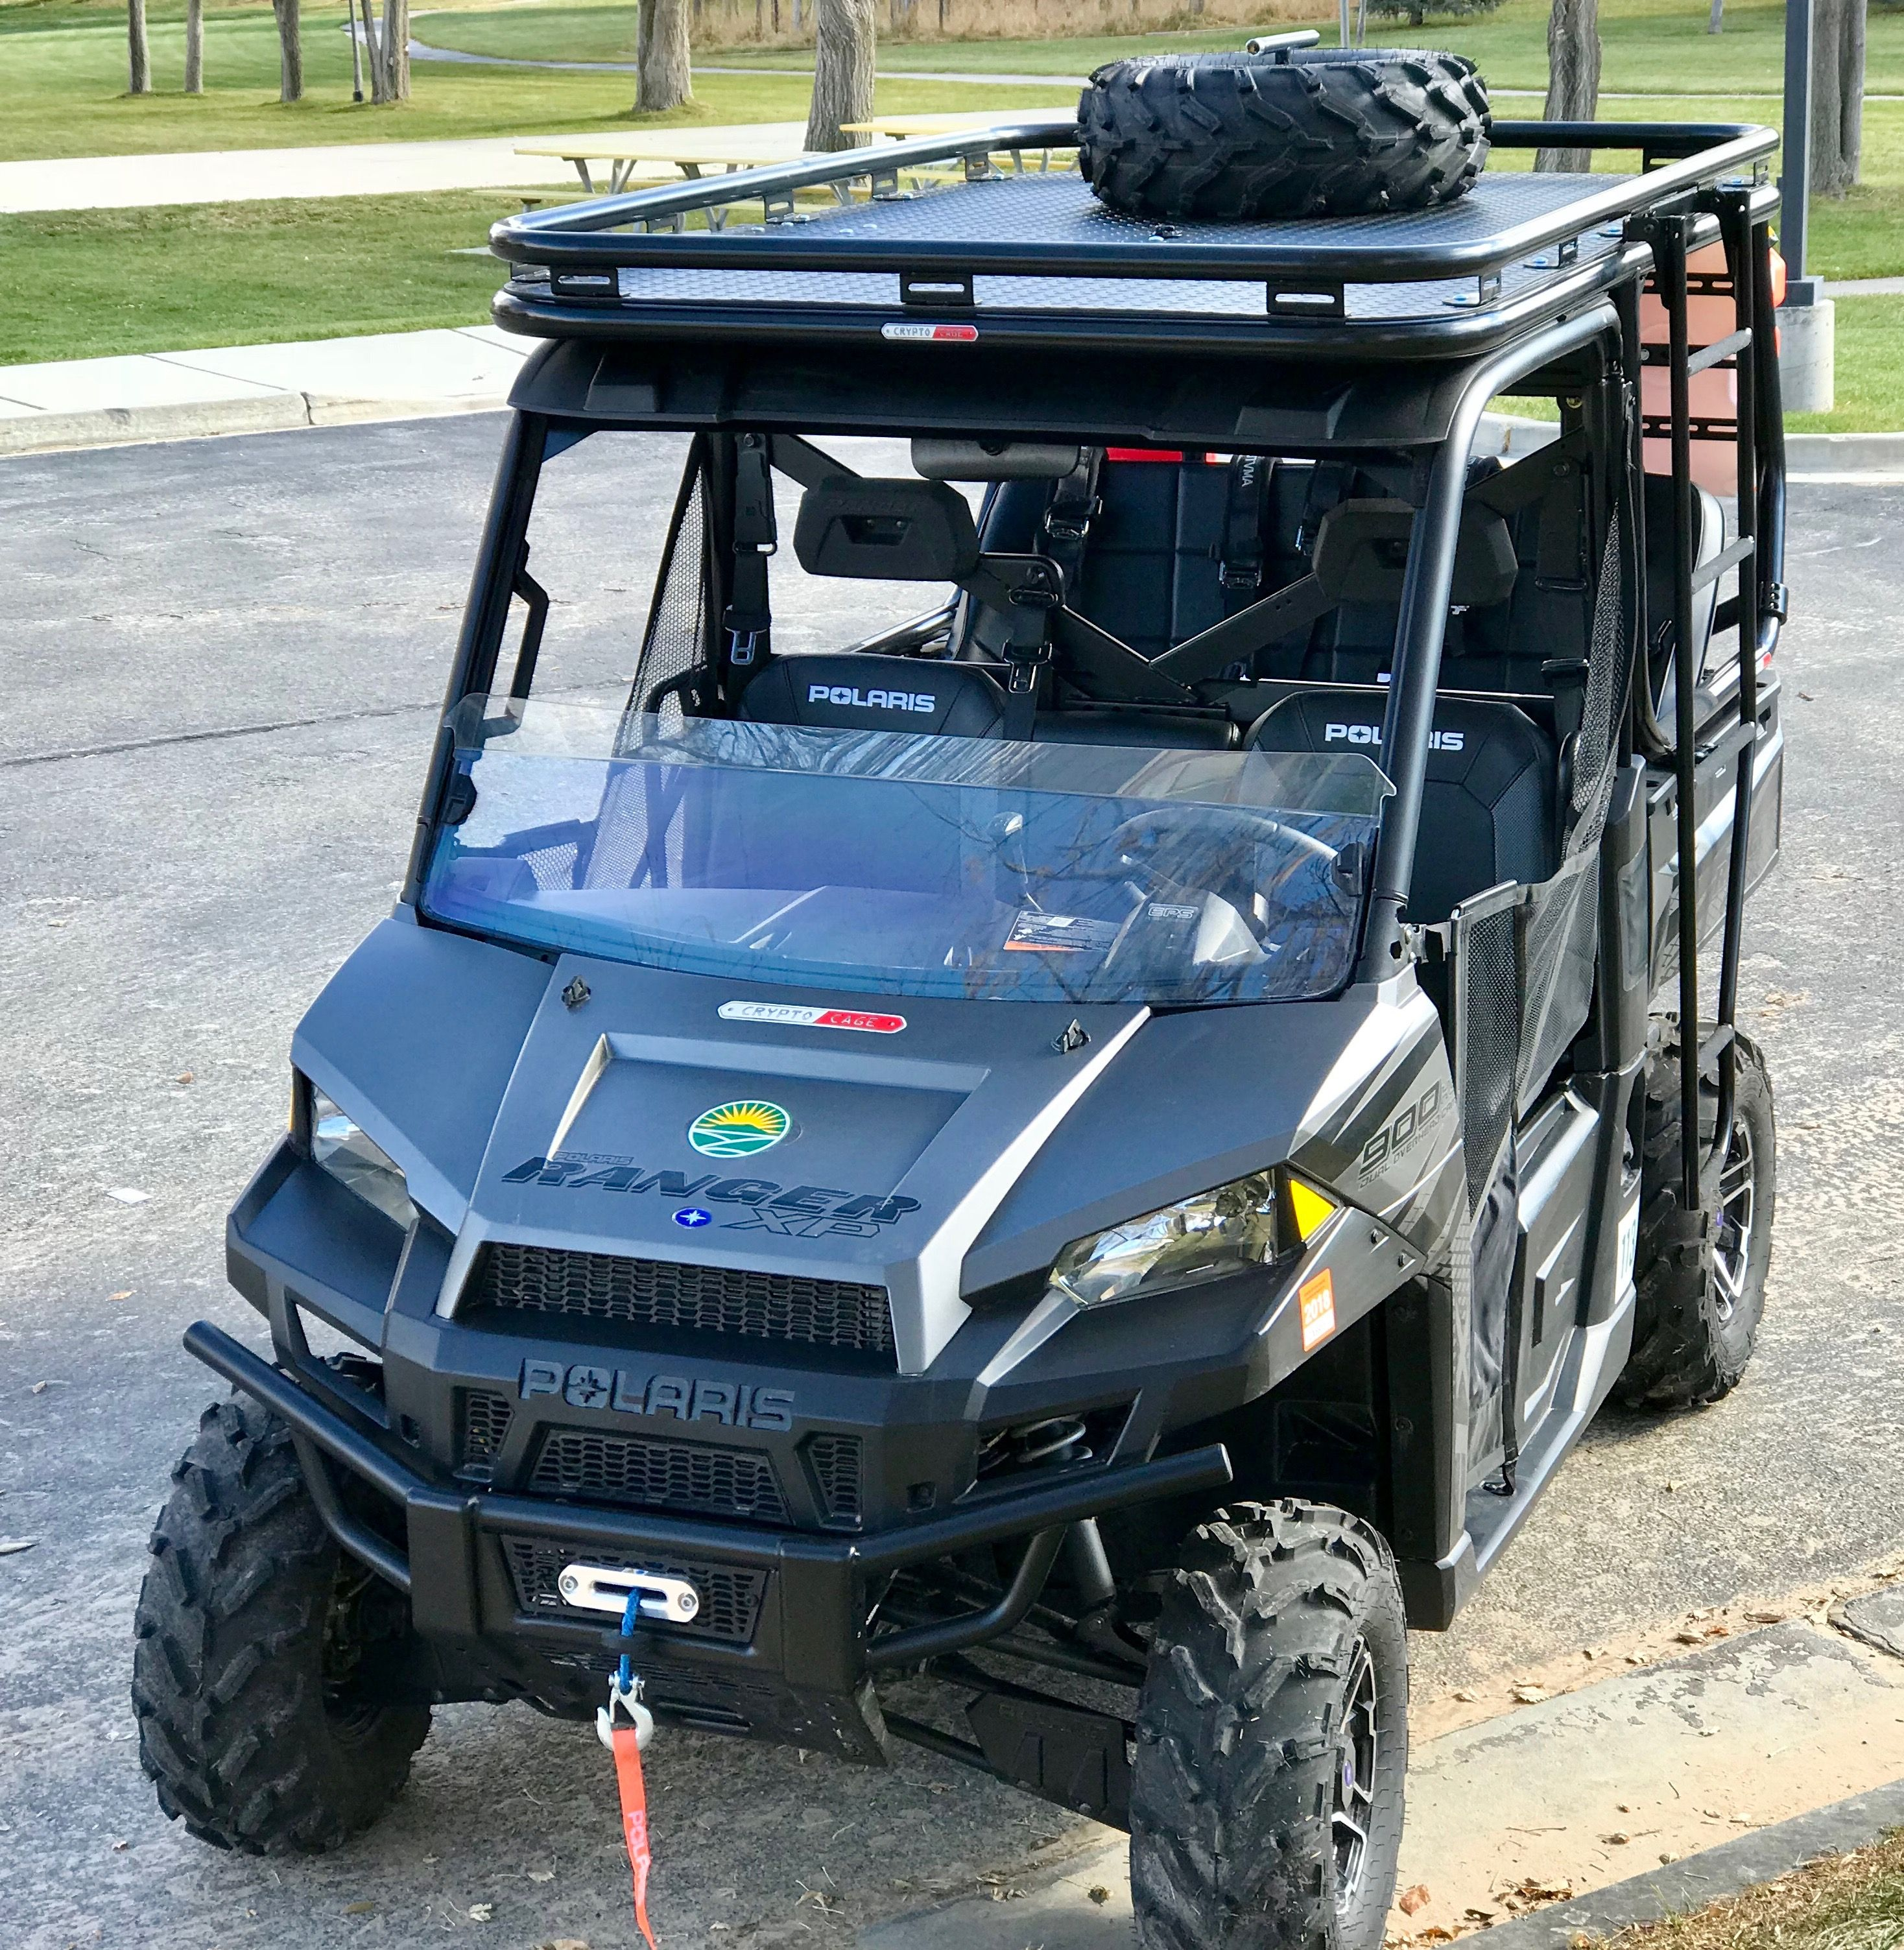 Cryptocage Introduces The Kong Cage For The Polaris Ranger 900 And 1000 The Kong Cage Ha Polaris Ranger Polaris Ranger Roll Cage Extension Polaris Ranger Crew